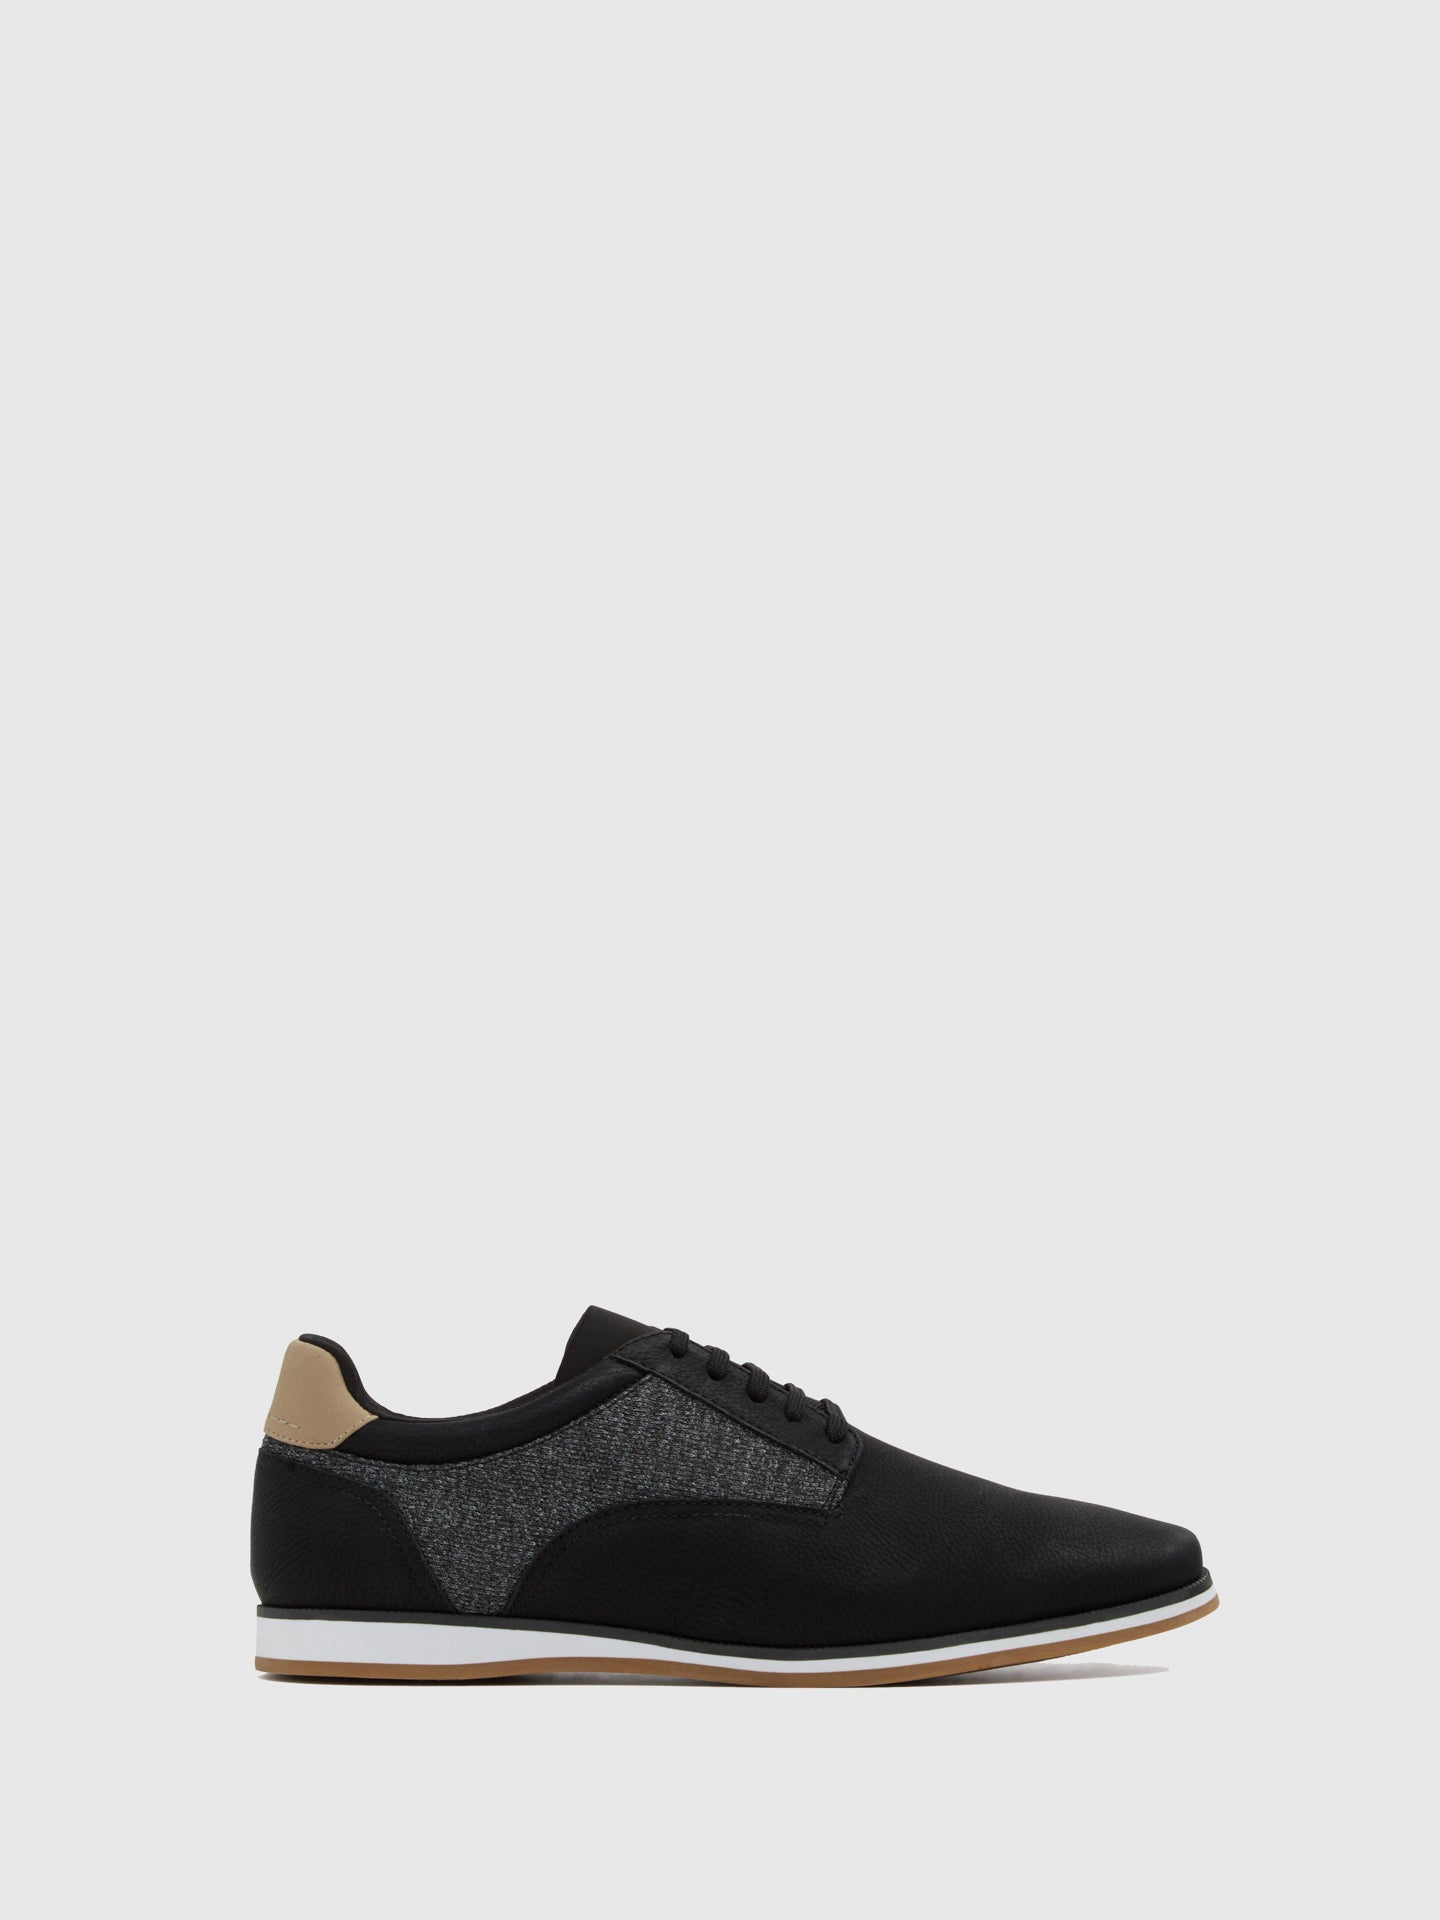 Aldo Gray Black Lace-up Trainers